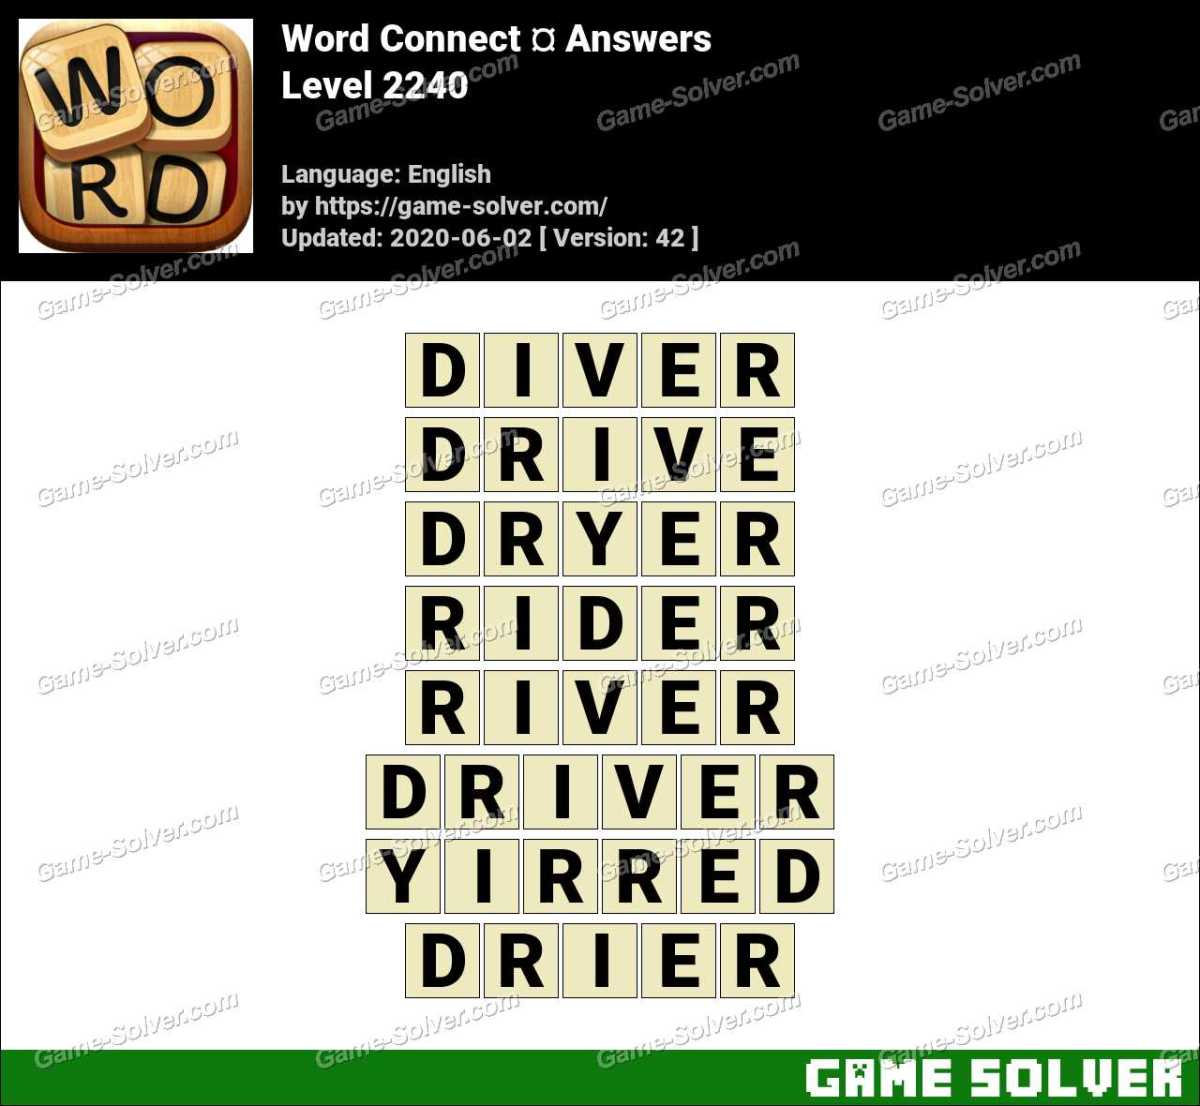 Word Connect Level 2240 Answers